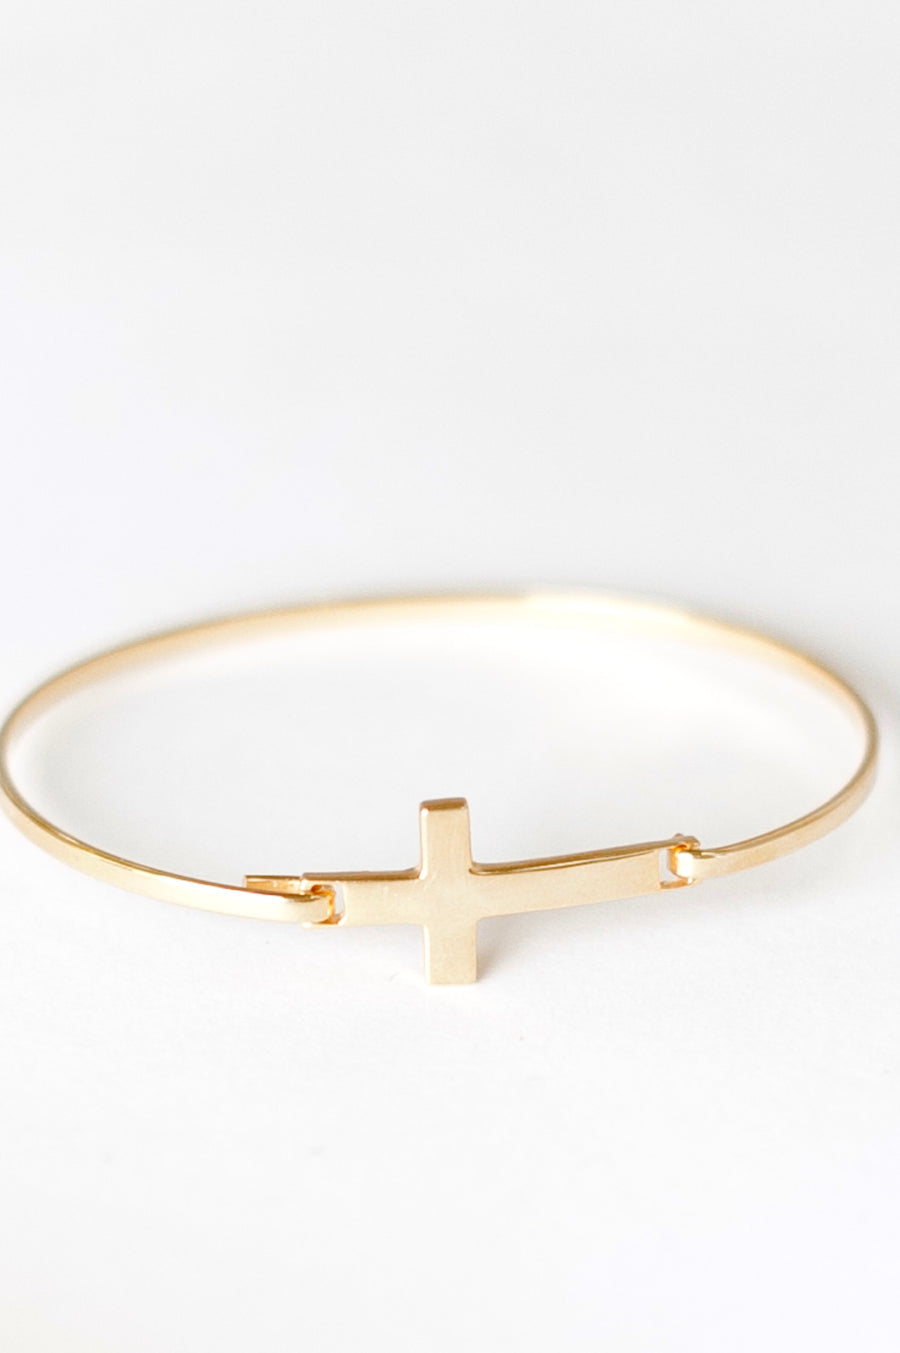 Cross Bangle - Shemoni Jewelry